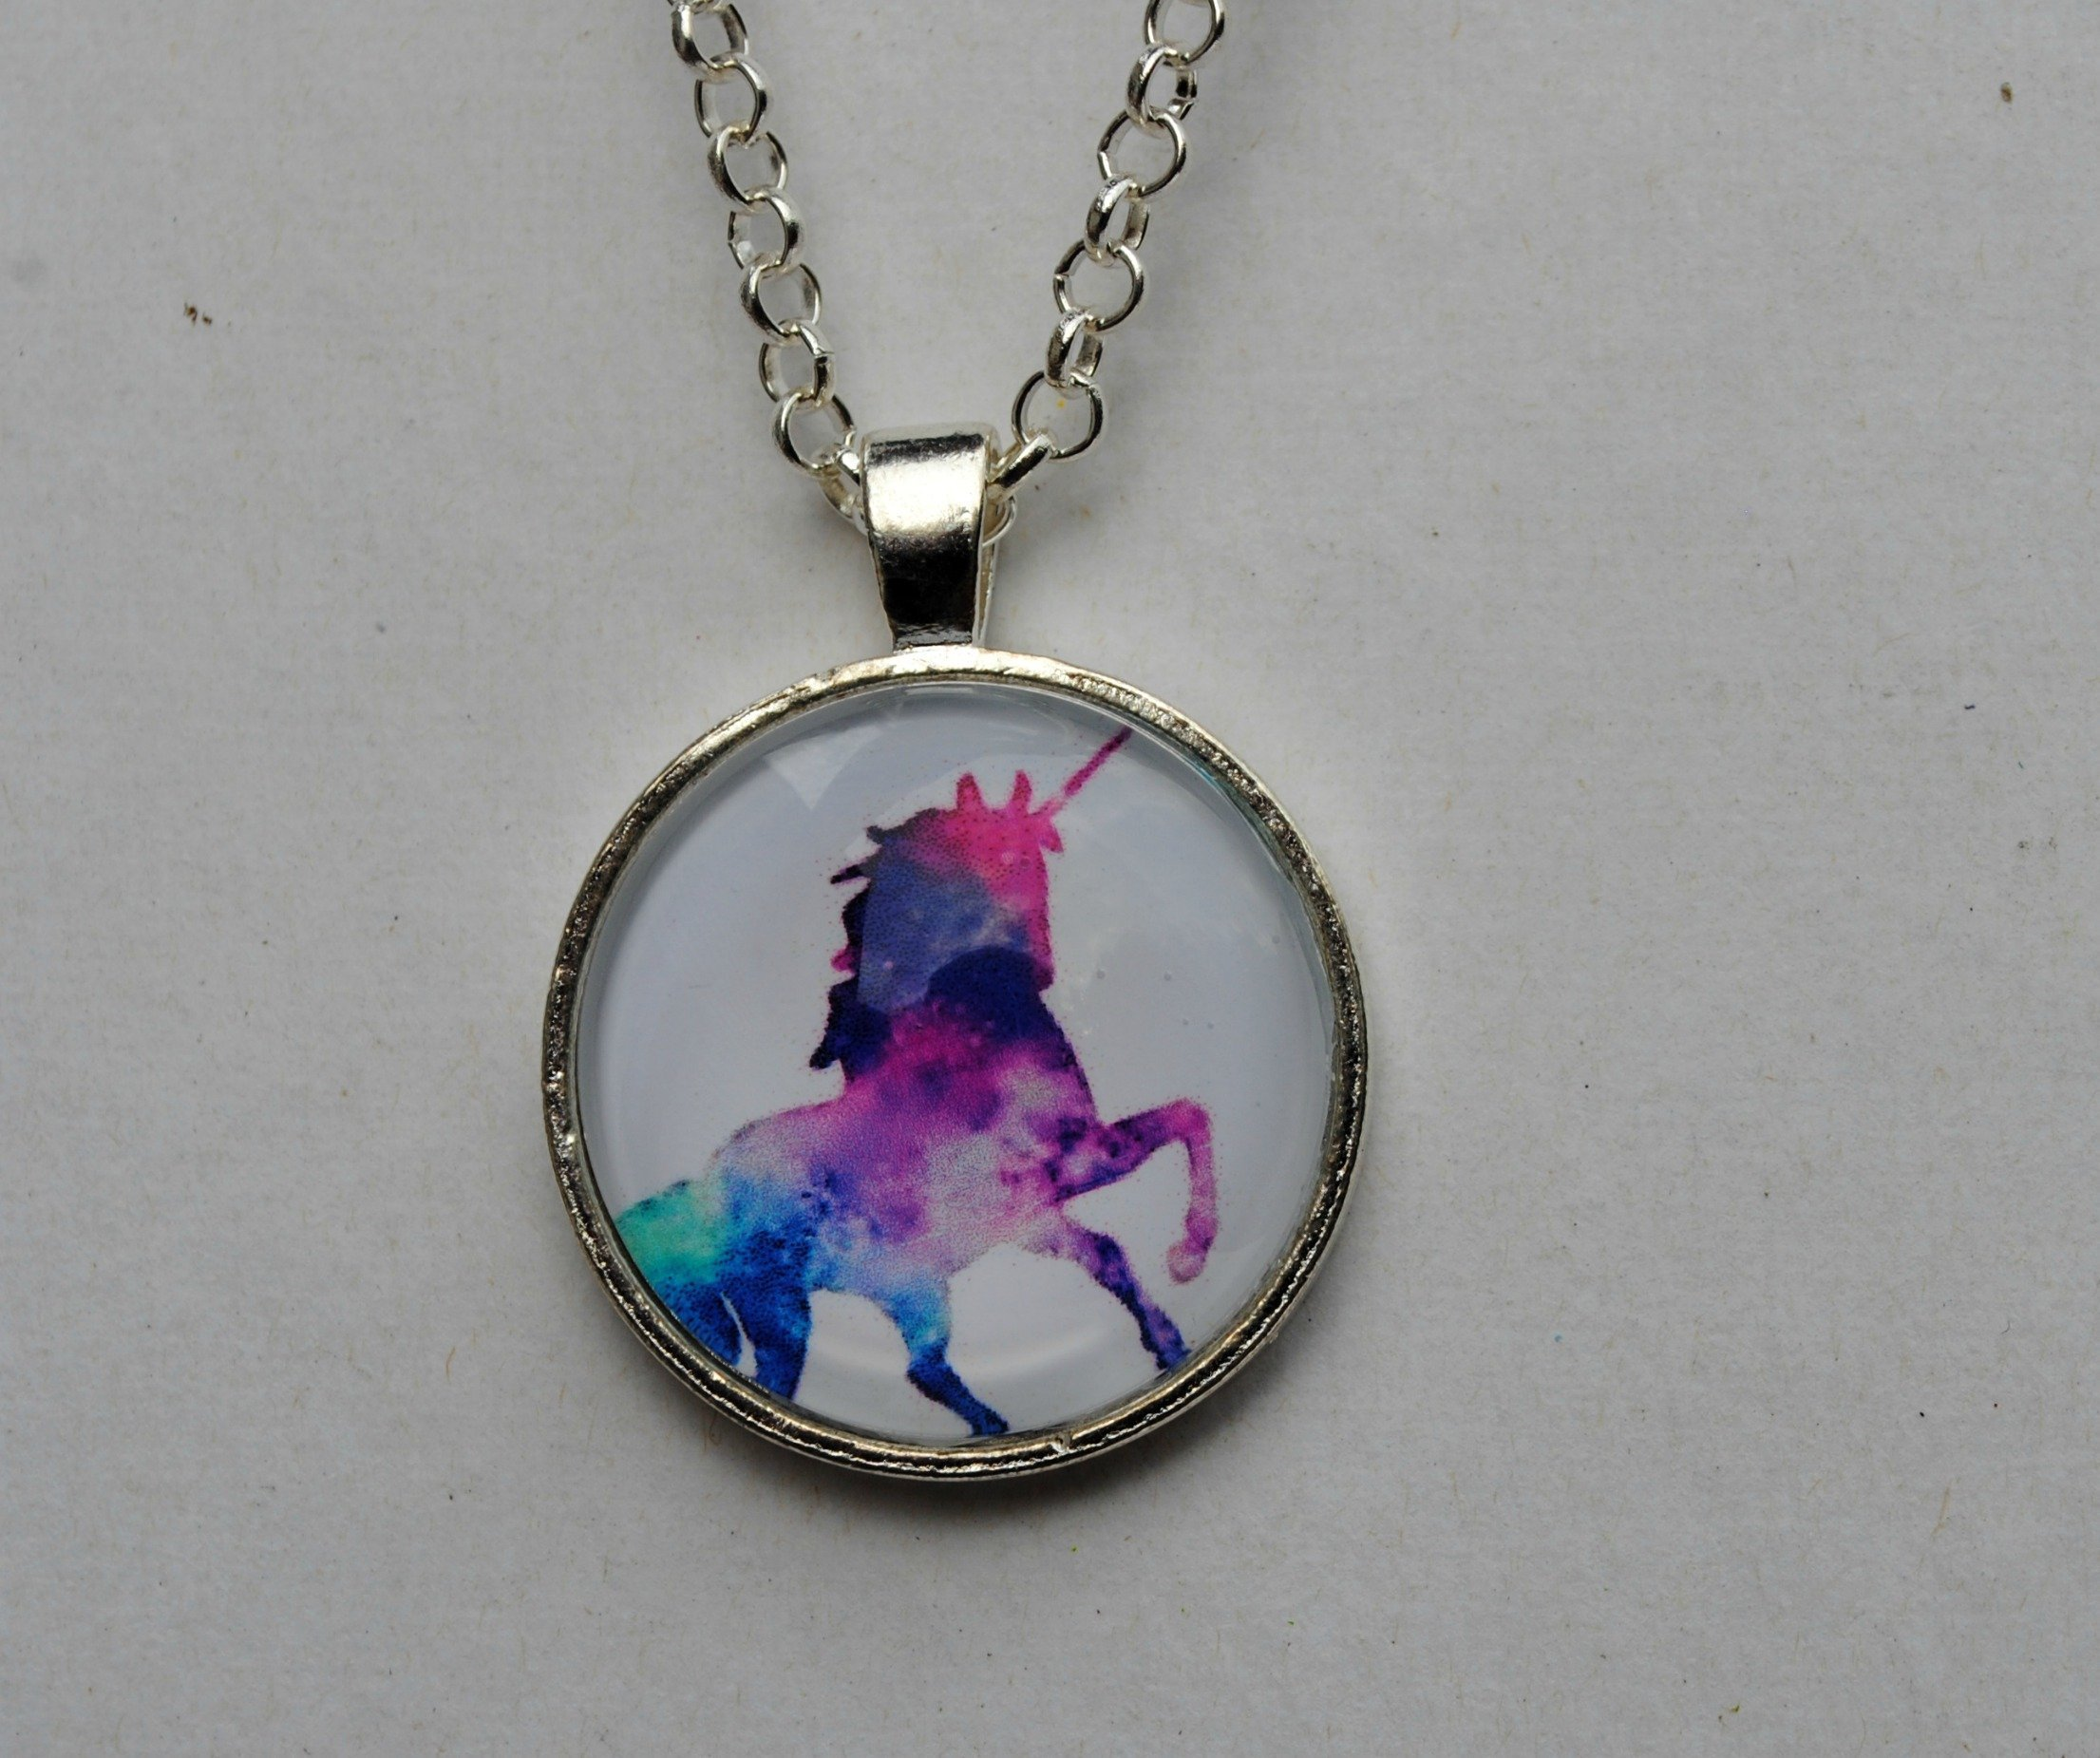 Magical Rainbow Unicorn Glass Dome Circle Pendant Necklace 24 Inch Chain Jewelry 4